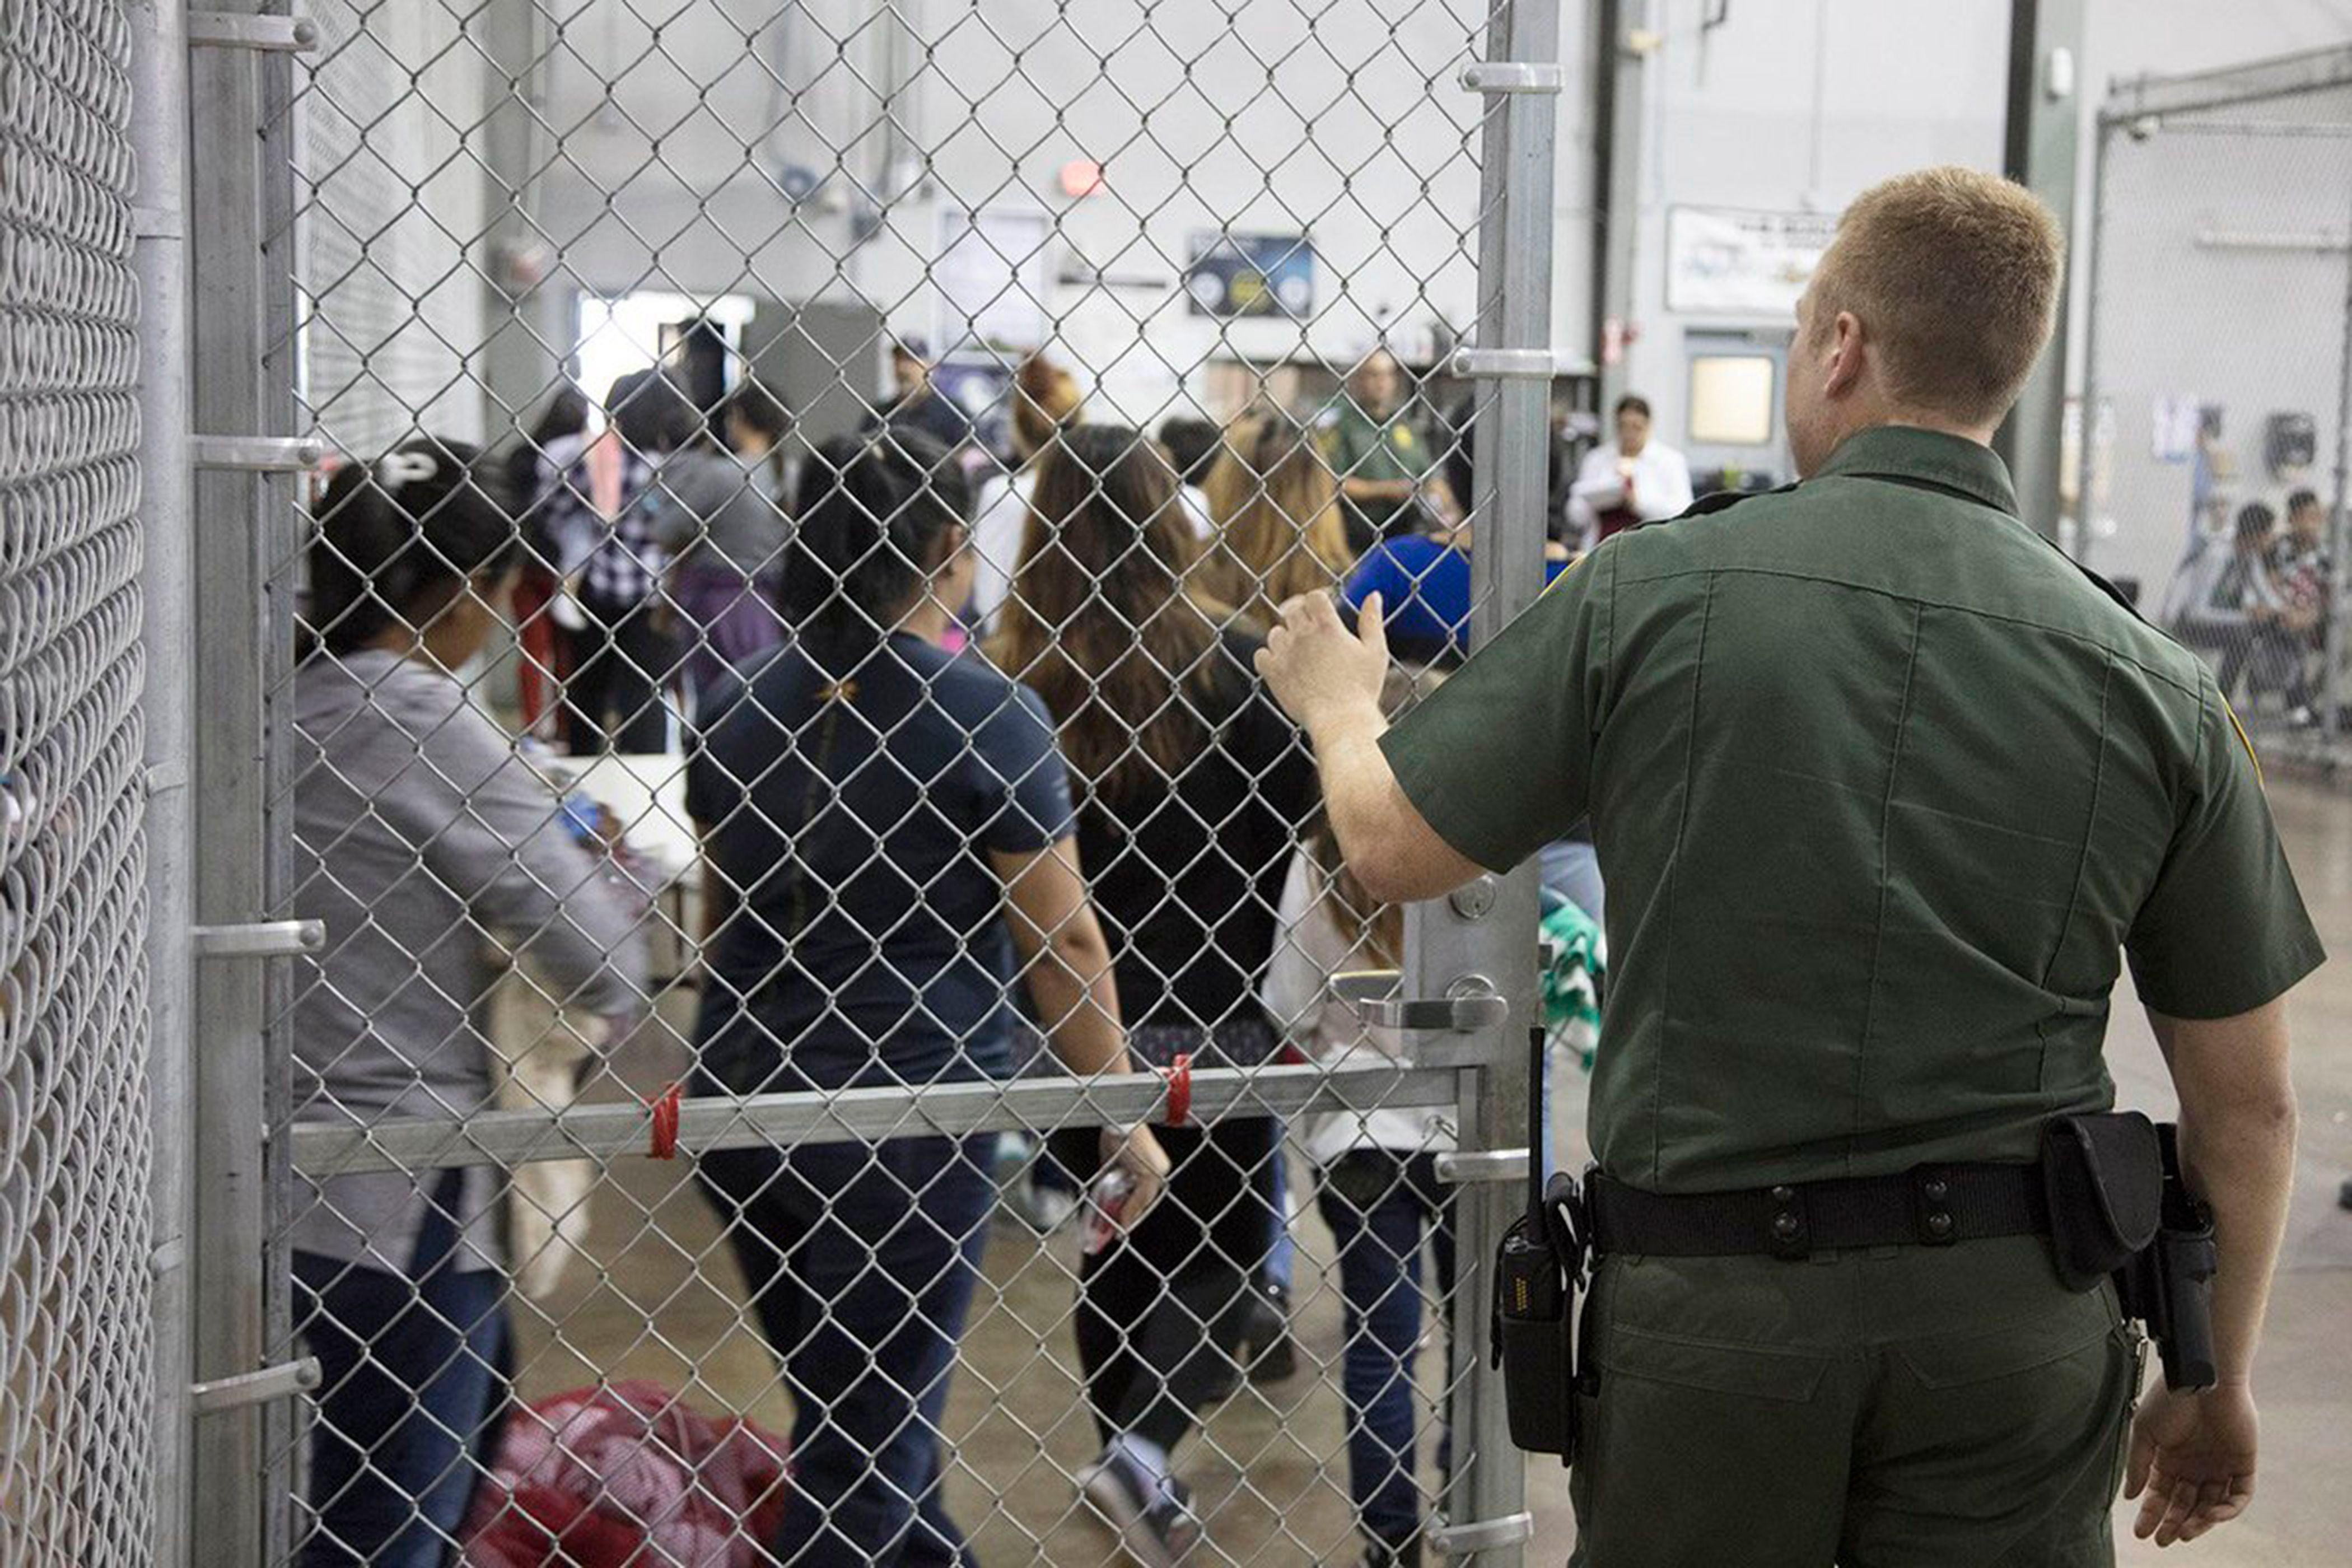 An undated handout photo made available on 18 June 2018 by the US Customs and Border Patrol showing people inside a United States Border Patrol Processing Center, in McAllen, Texas